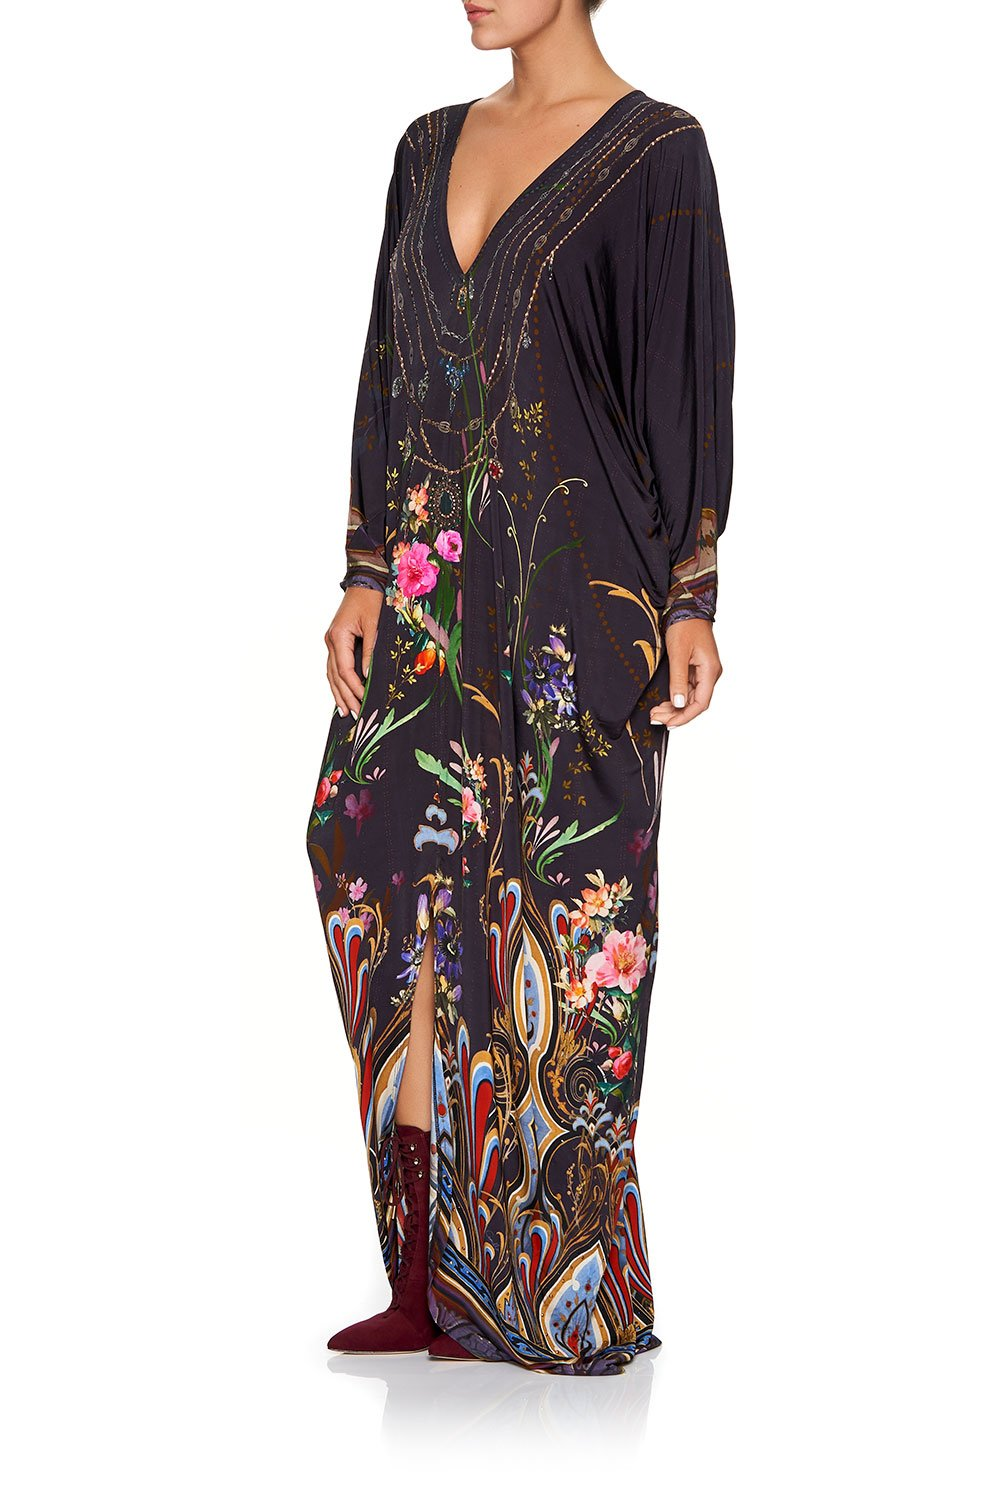 CAMILLA DOLMAN SLEEVE JERSEY DRESS WILD FLOWER